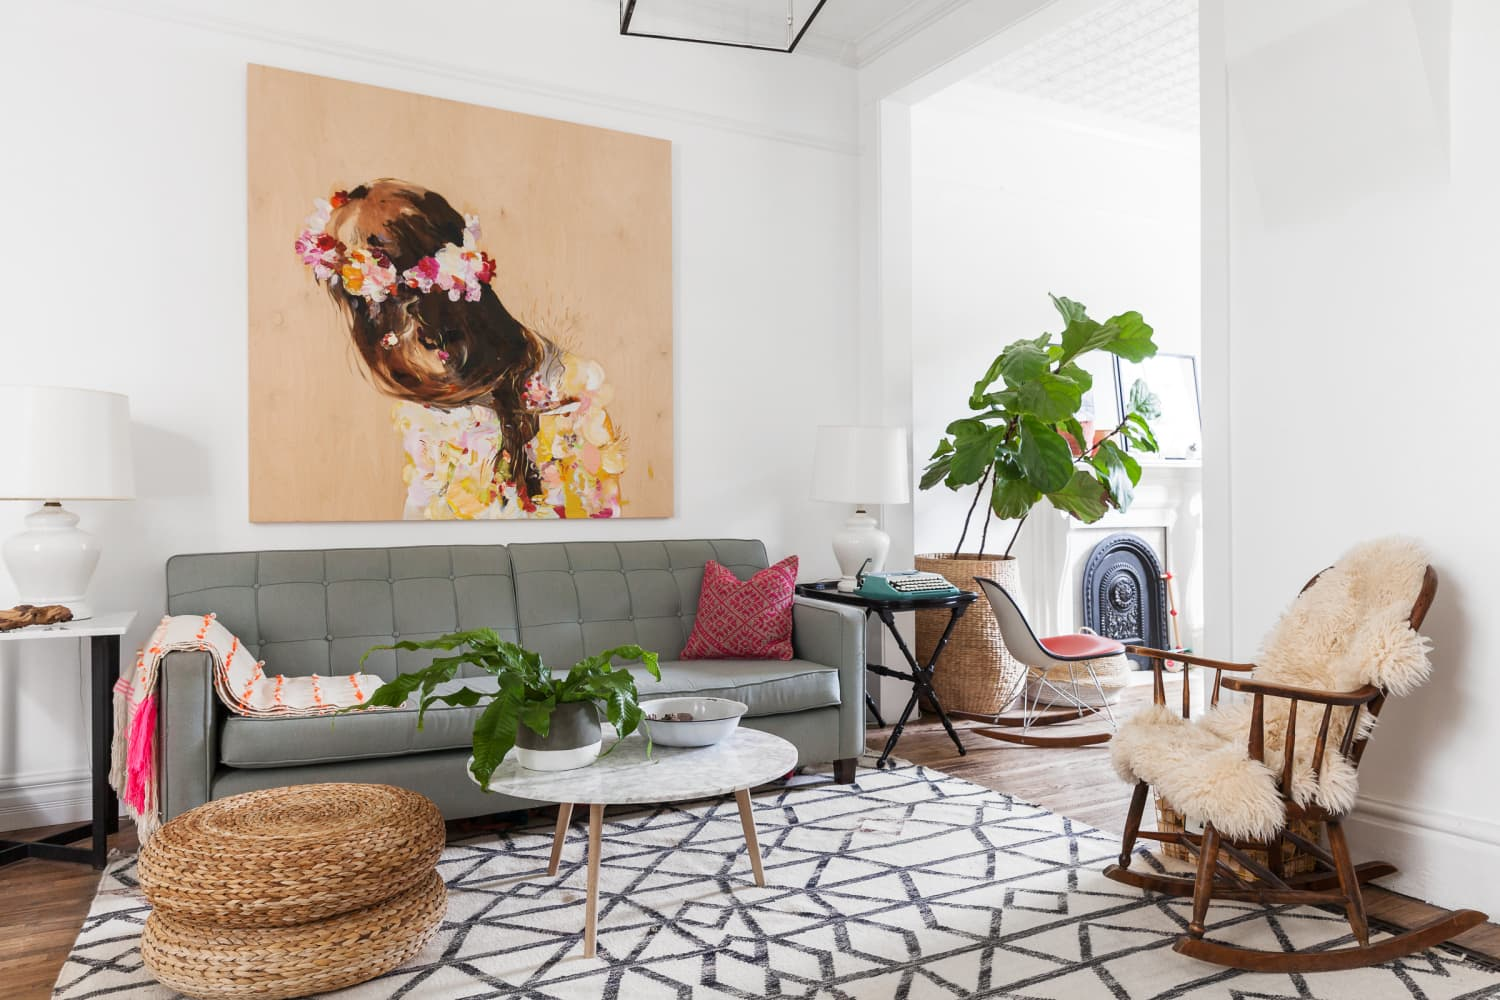 10 Floor Seating Options for When You Just Don't Have Room for One More Chair